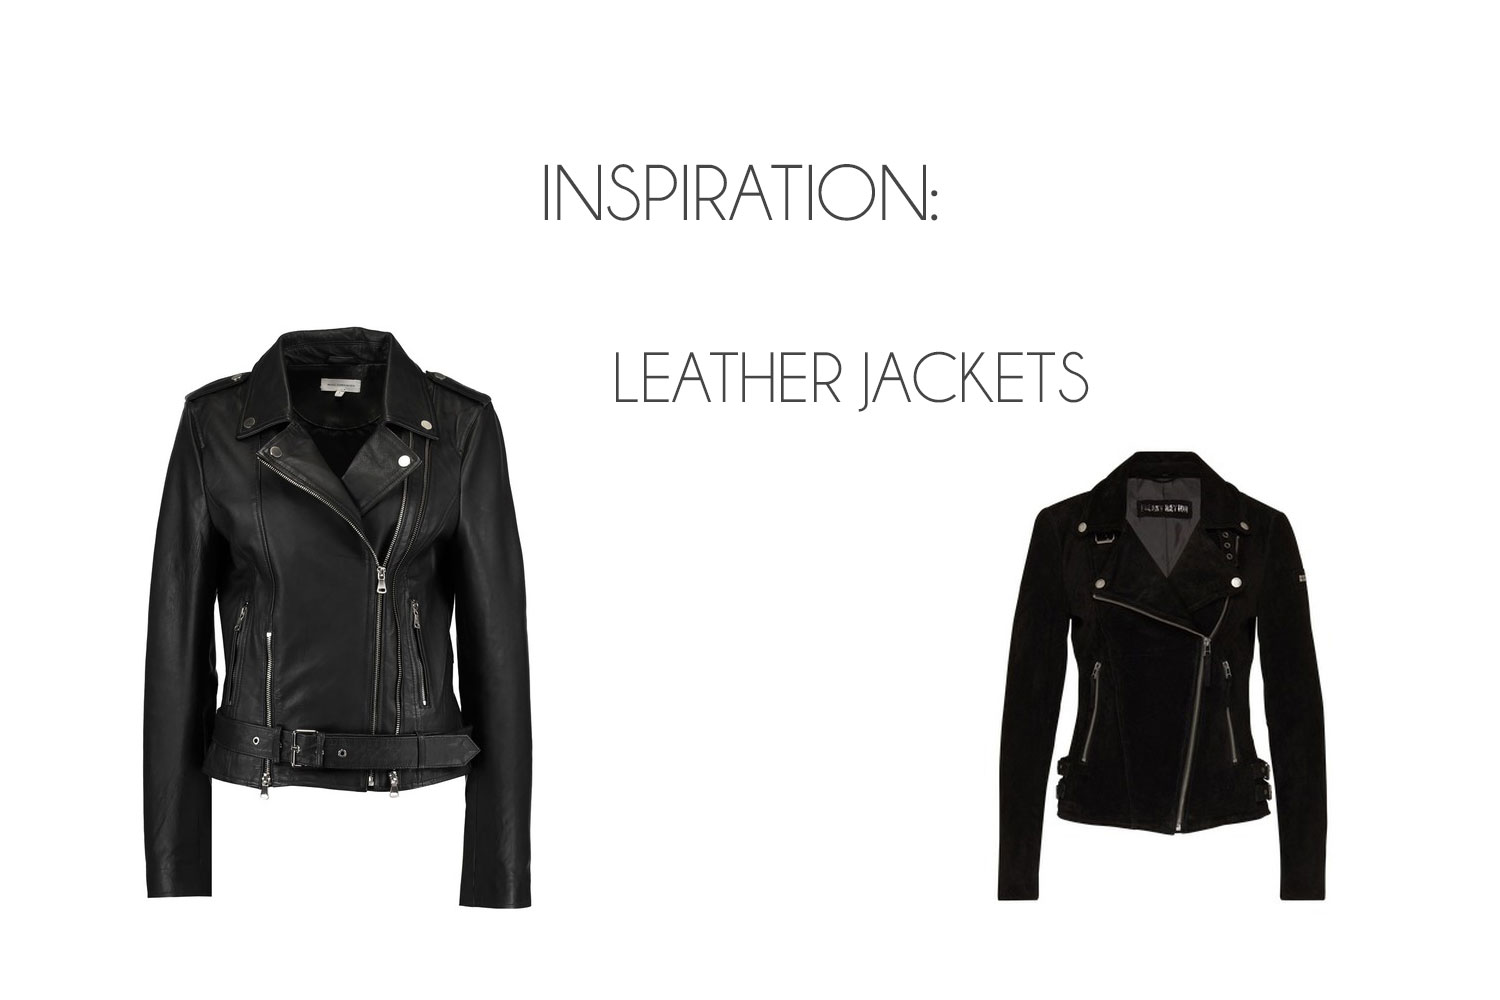 Inspiration: Leather Jackets for Autumn - Leather Jackets